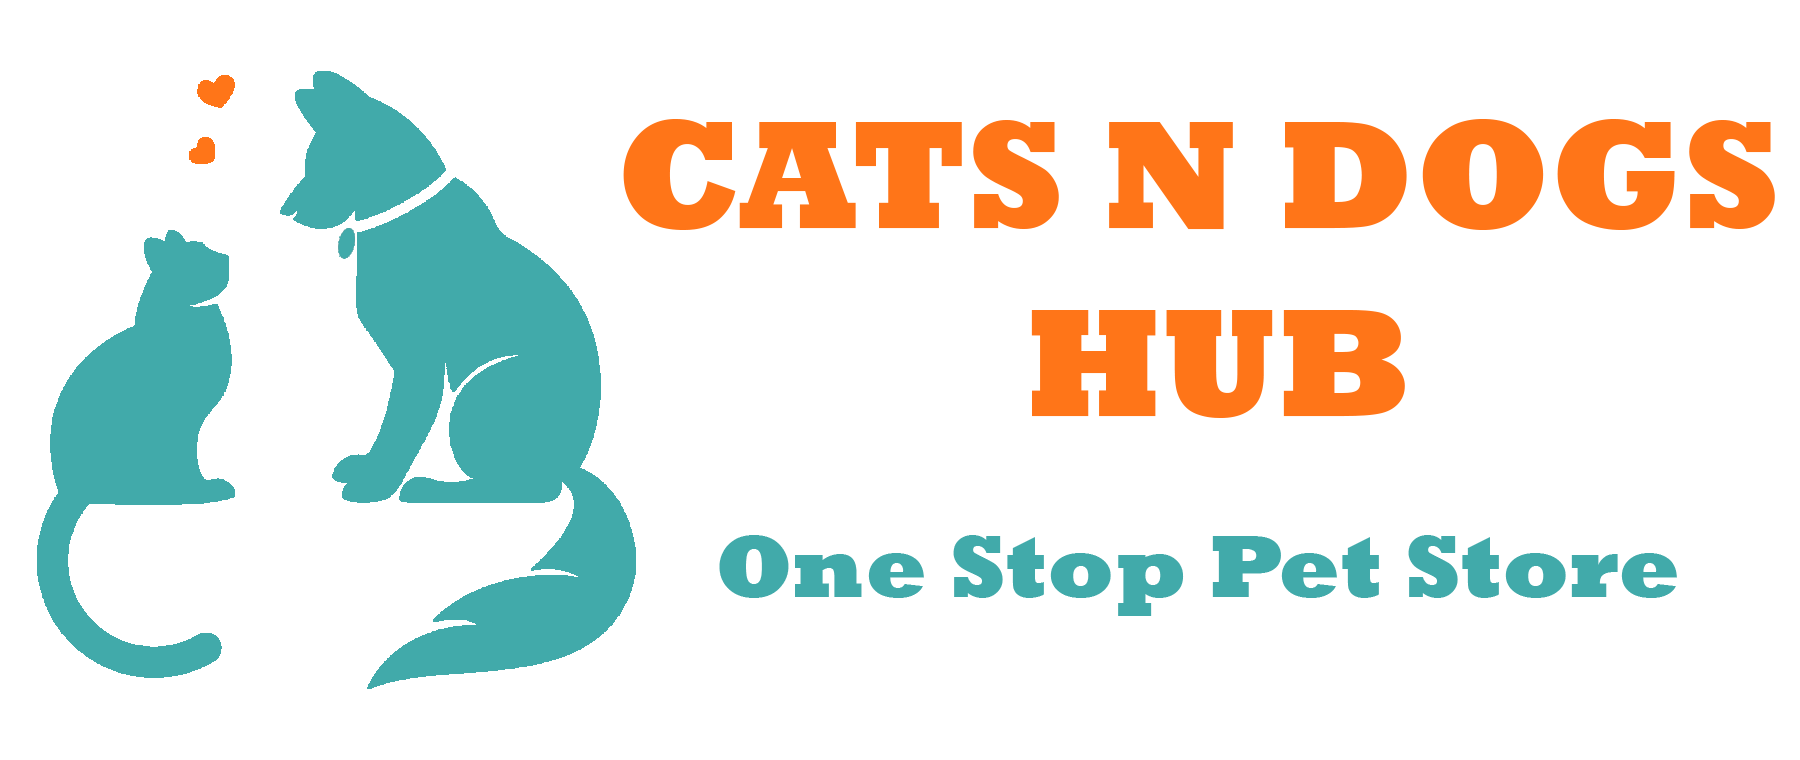 Cats n Dogs Hub | One Stop Pet Store